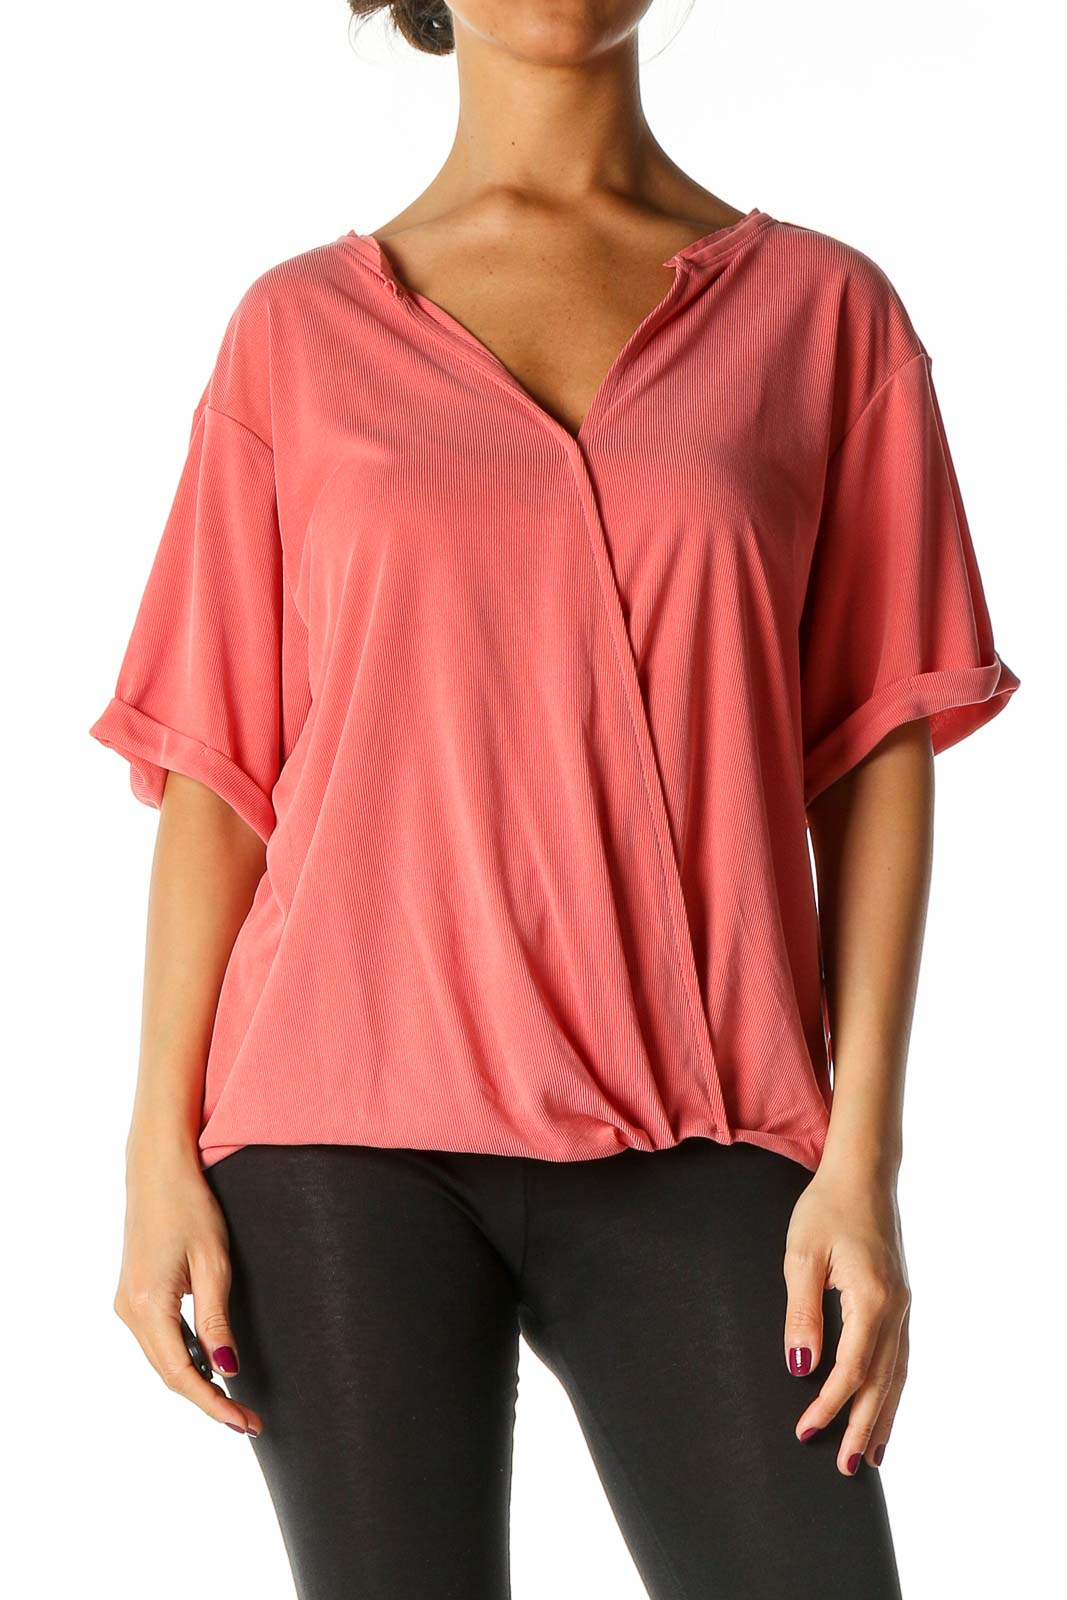 Pink Solid Casual T-Shirt Front